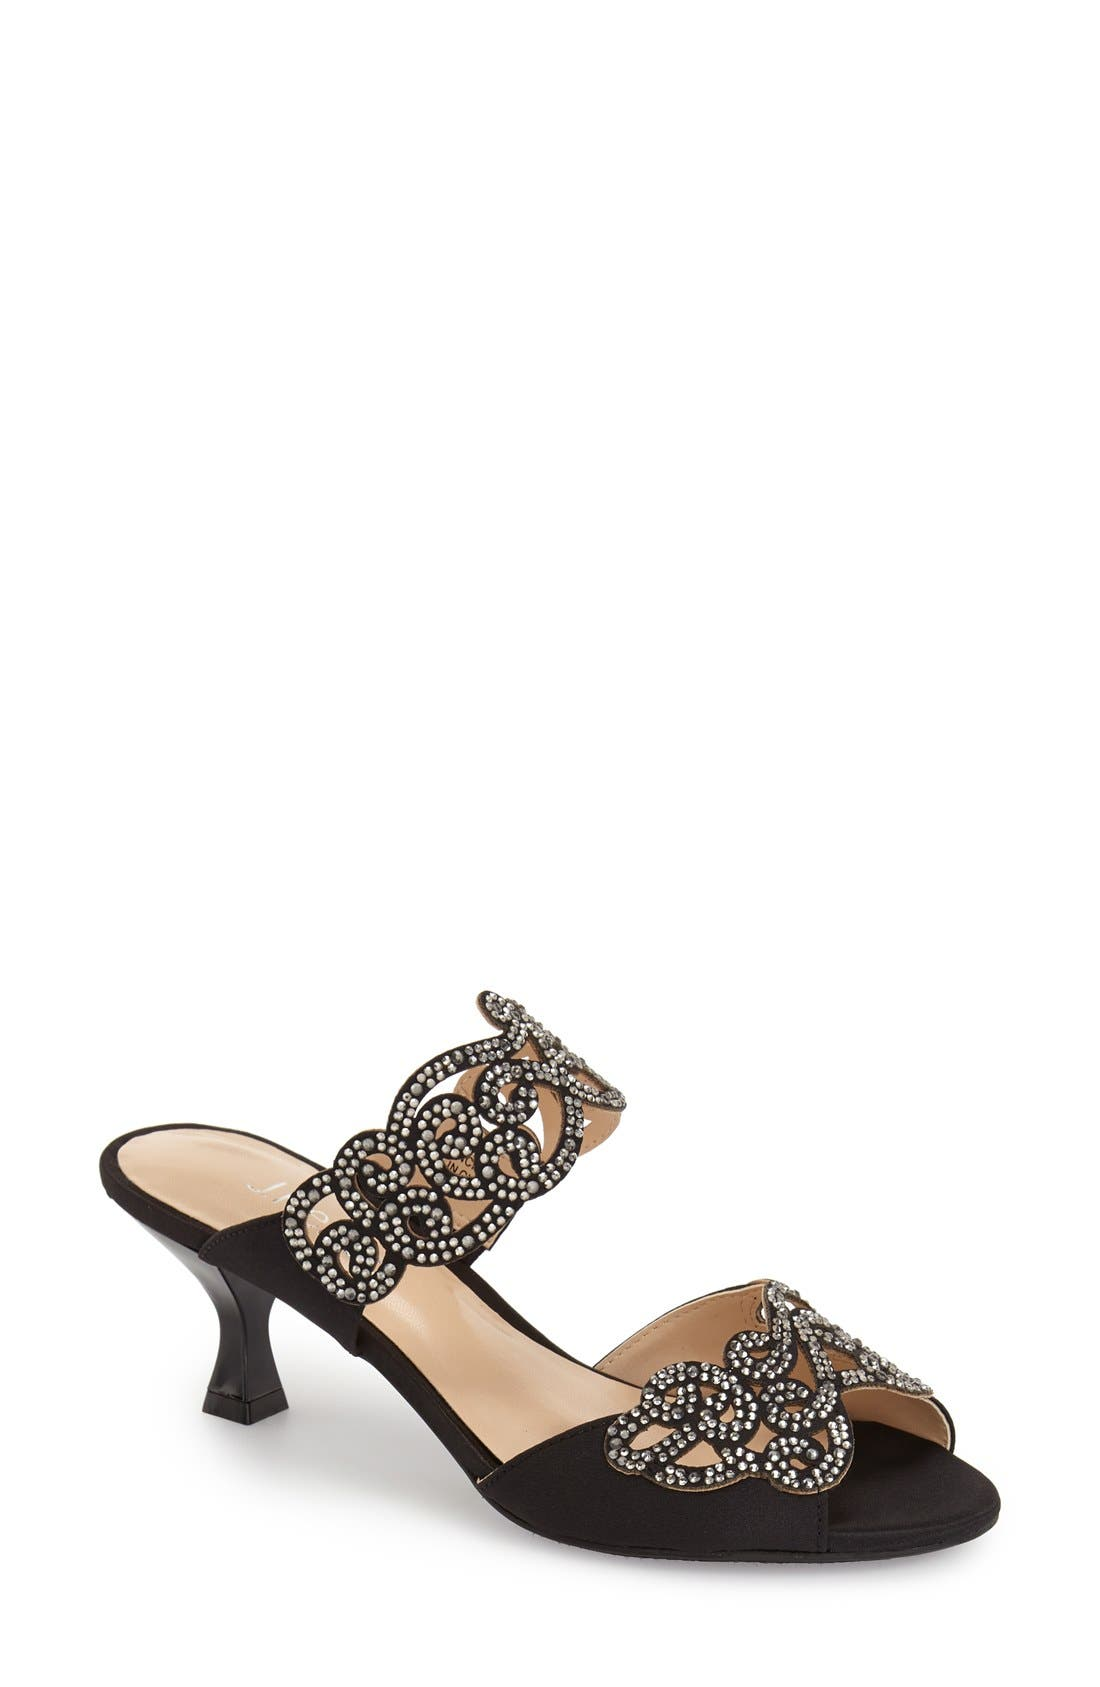 J. RENEÉ 'Francie' Evening Sandal